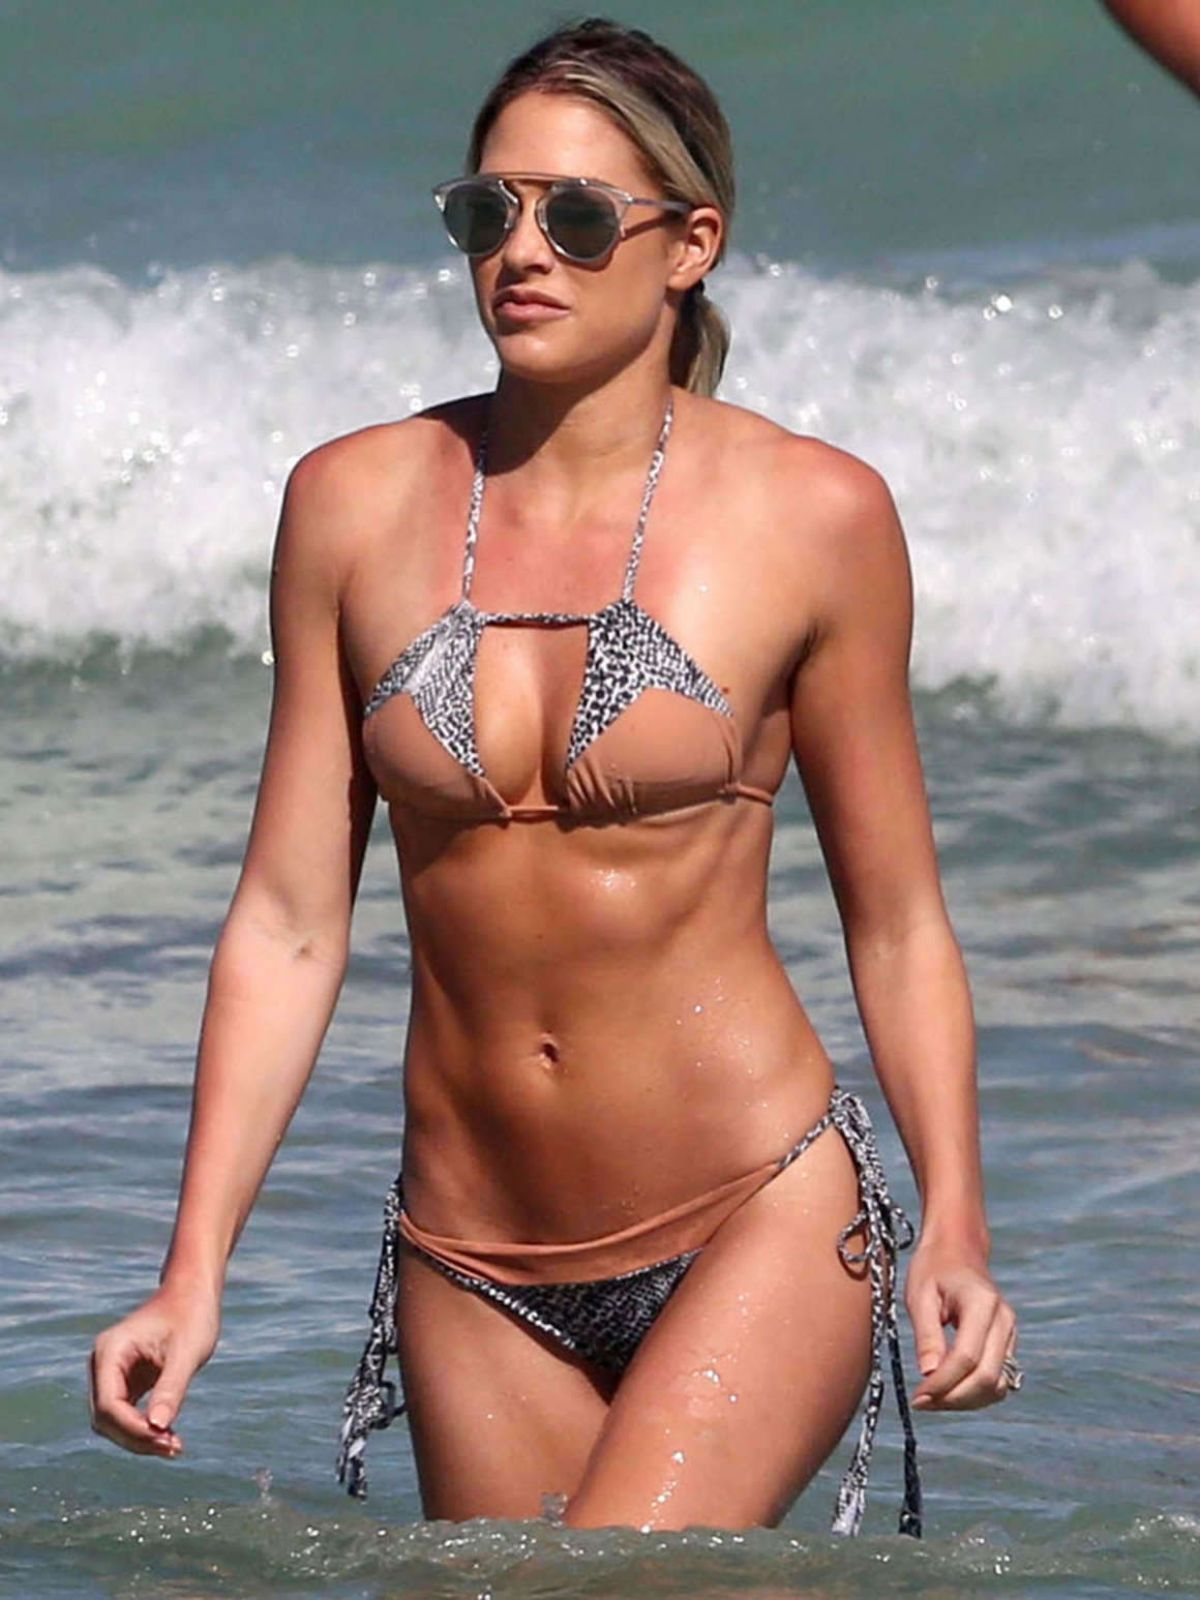 BARBIE BLANK in Bikini on the Beach in Miami 03/02/2017